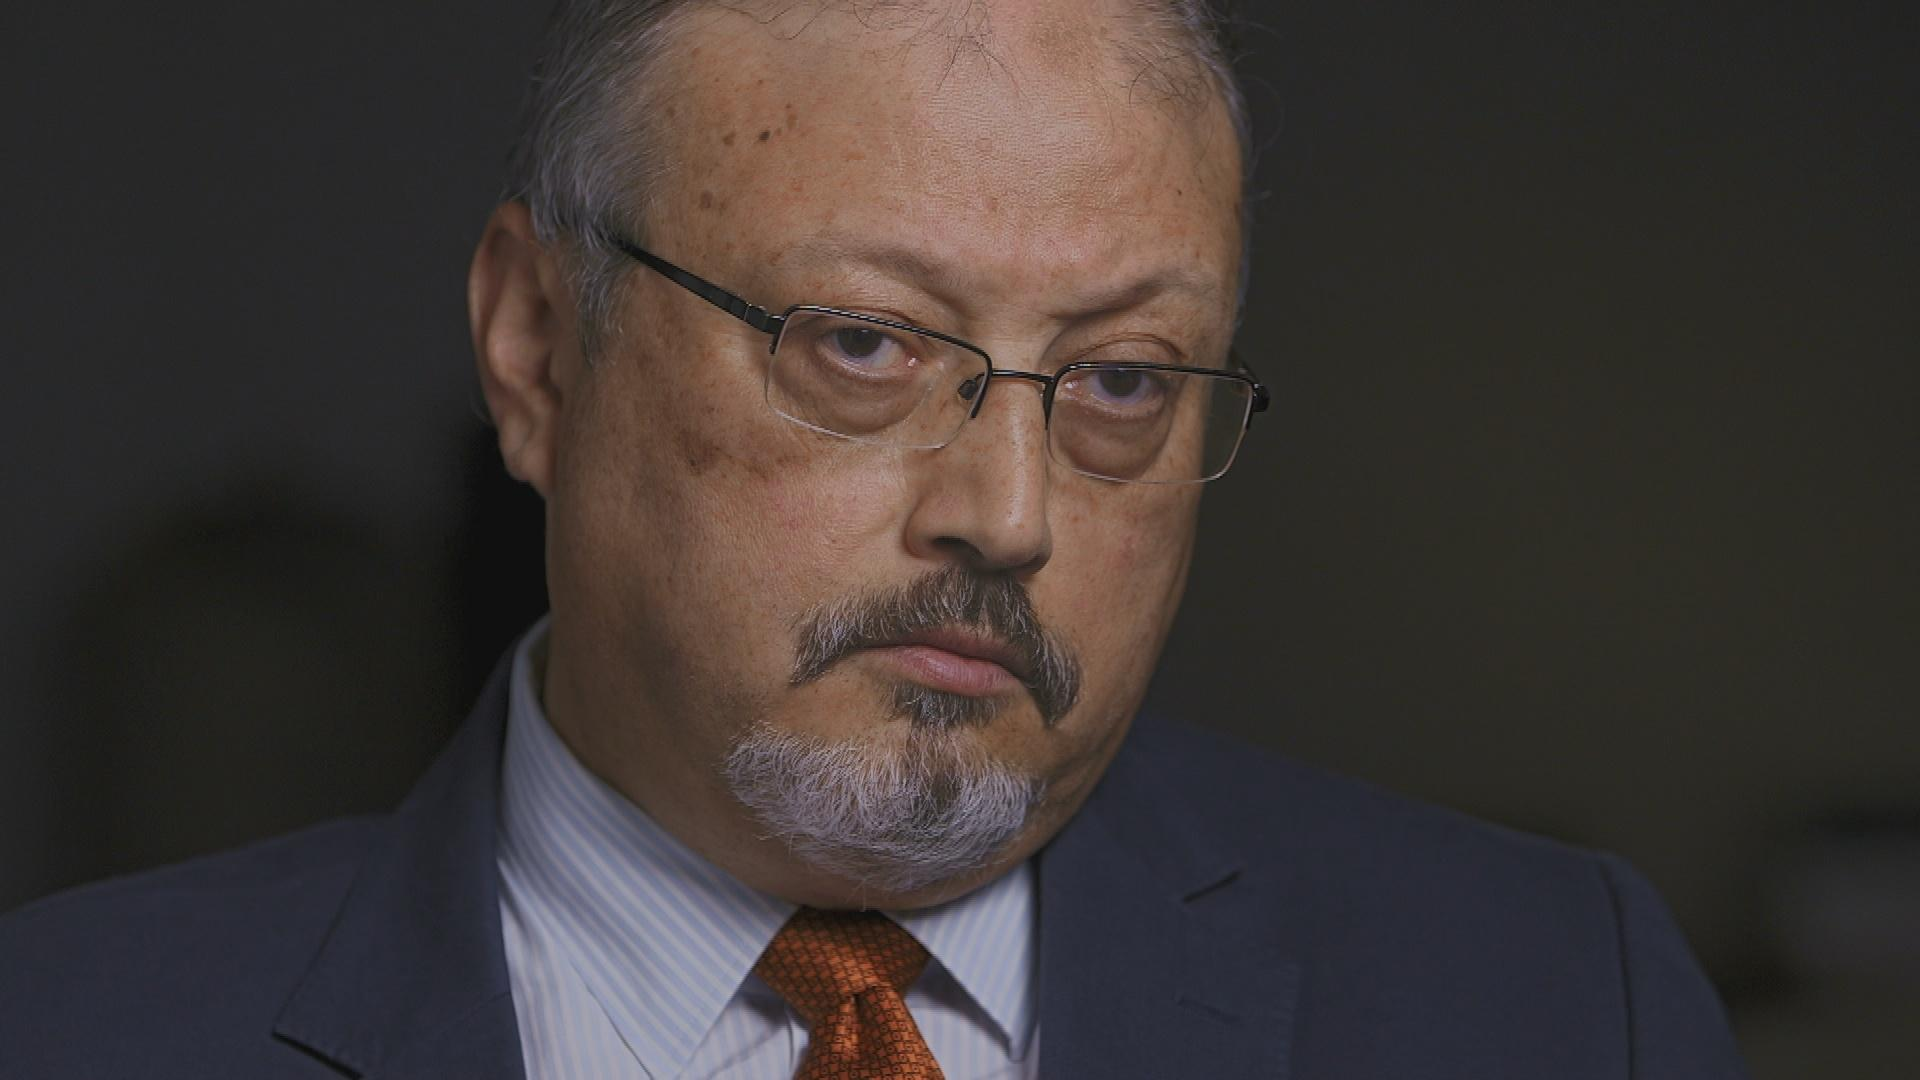 Inside Jamal Khashoggi's Decision to Speak Out Aga